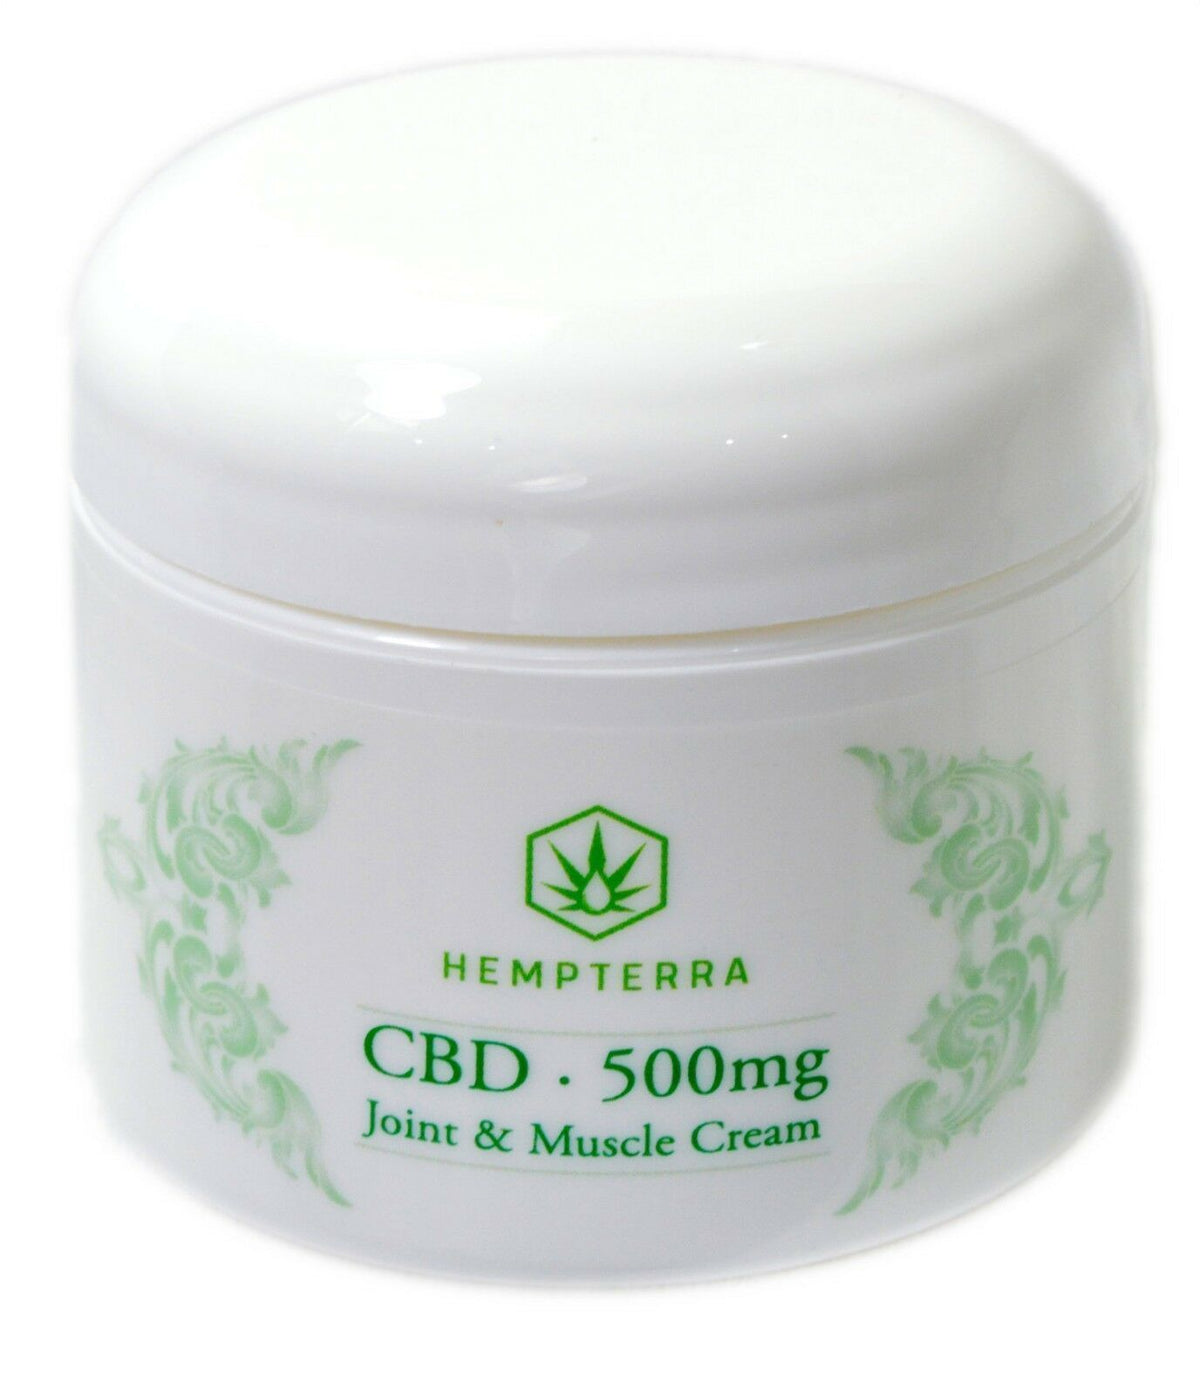 500mg Muscle & Joint Pain Cream/Ointment/Lotion/CBD Hemp Extract Oil/Topical